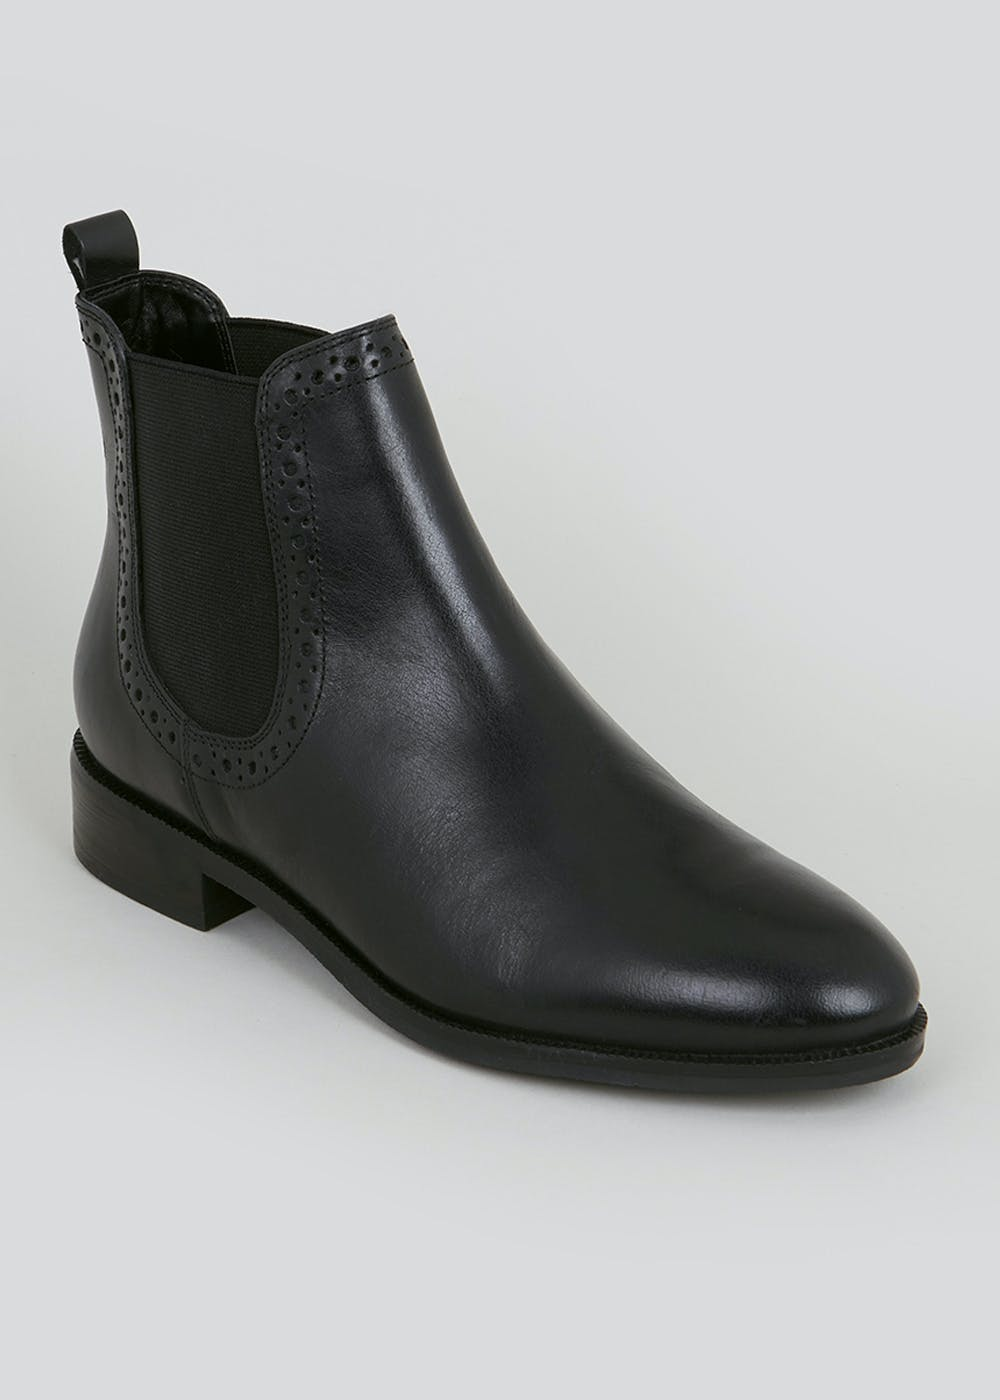 Soleflex Black Real Leather Chelsea Boots – Black